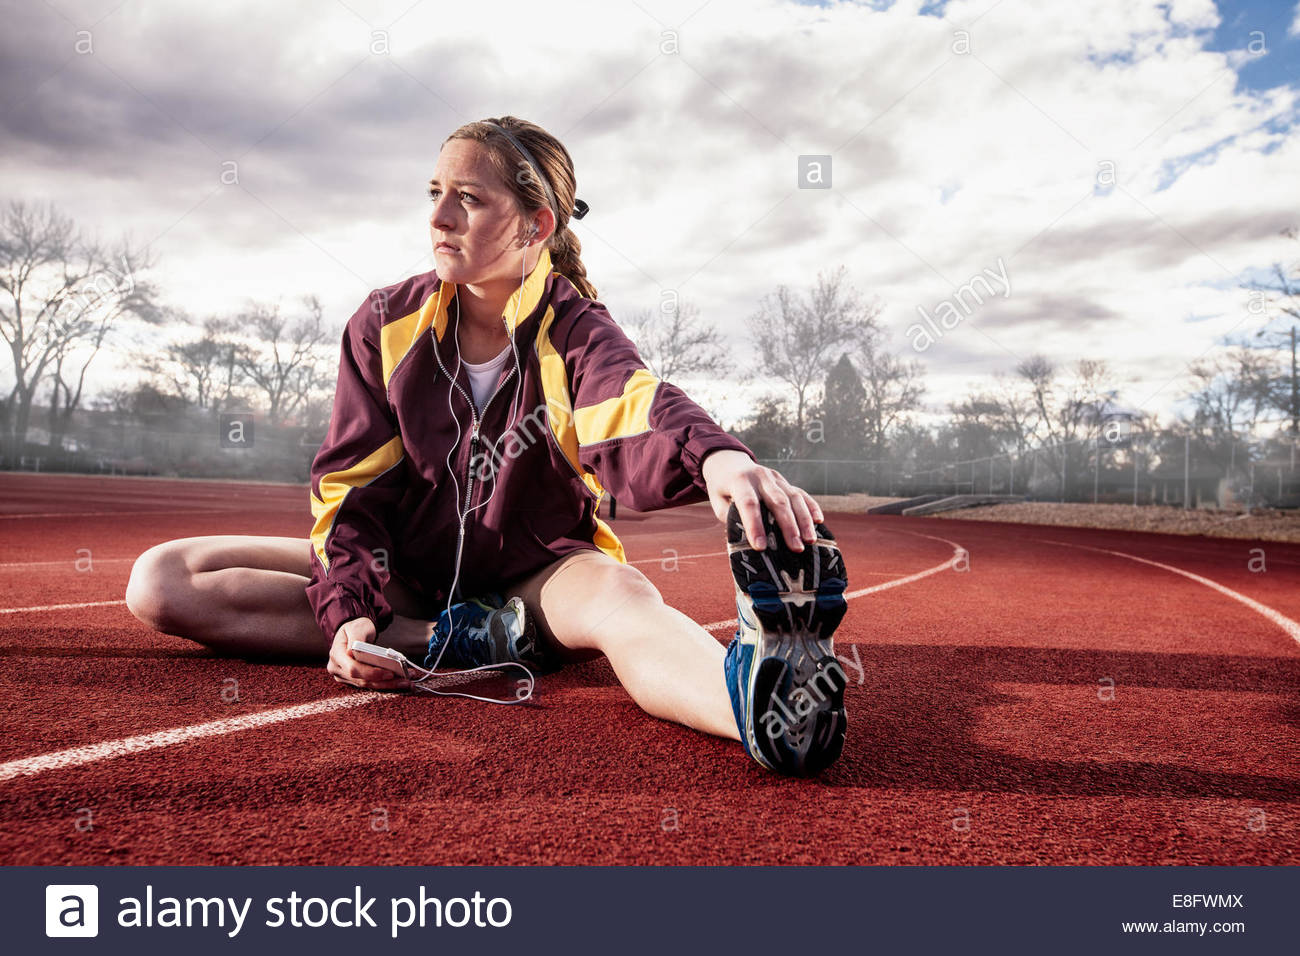 Young woman sitting on running track stretching while listening to music - Stock Image